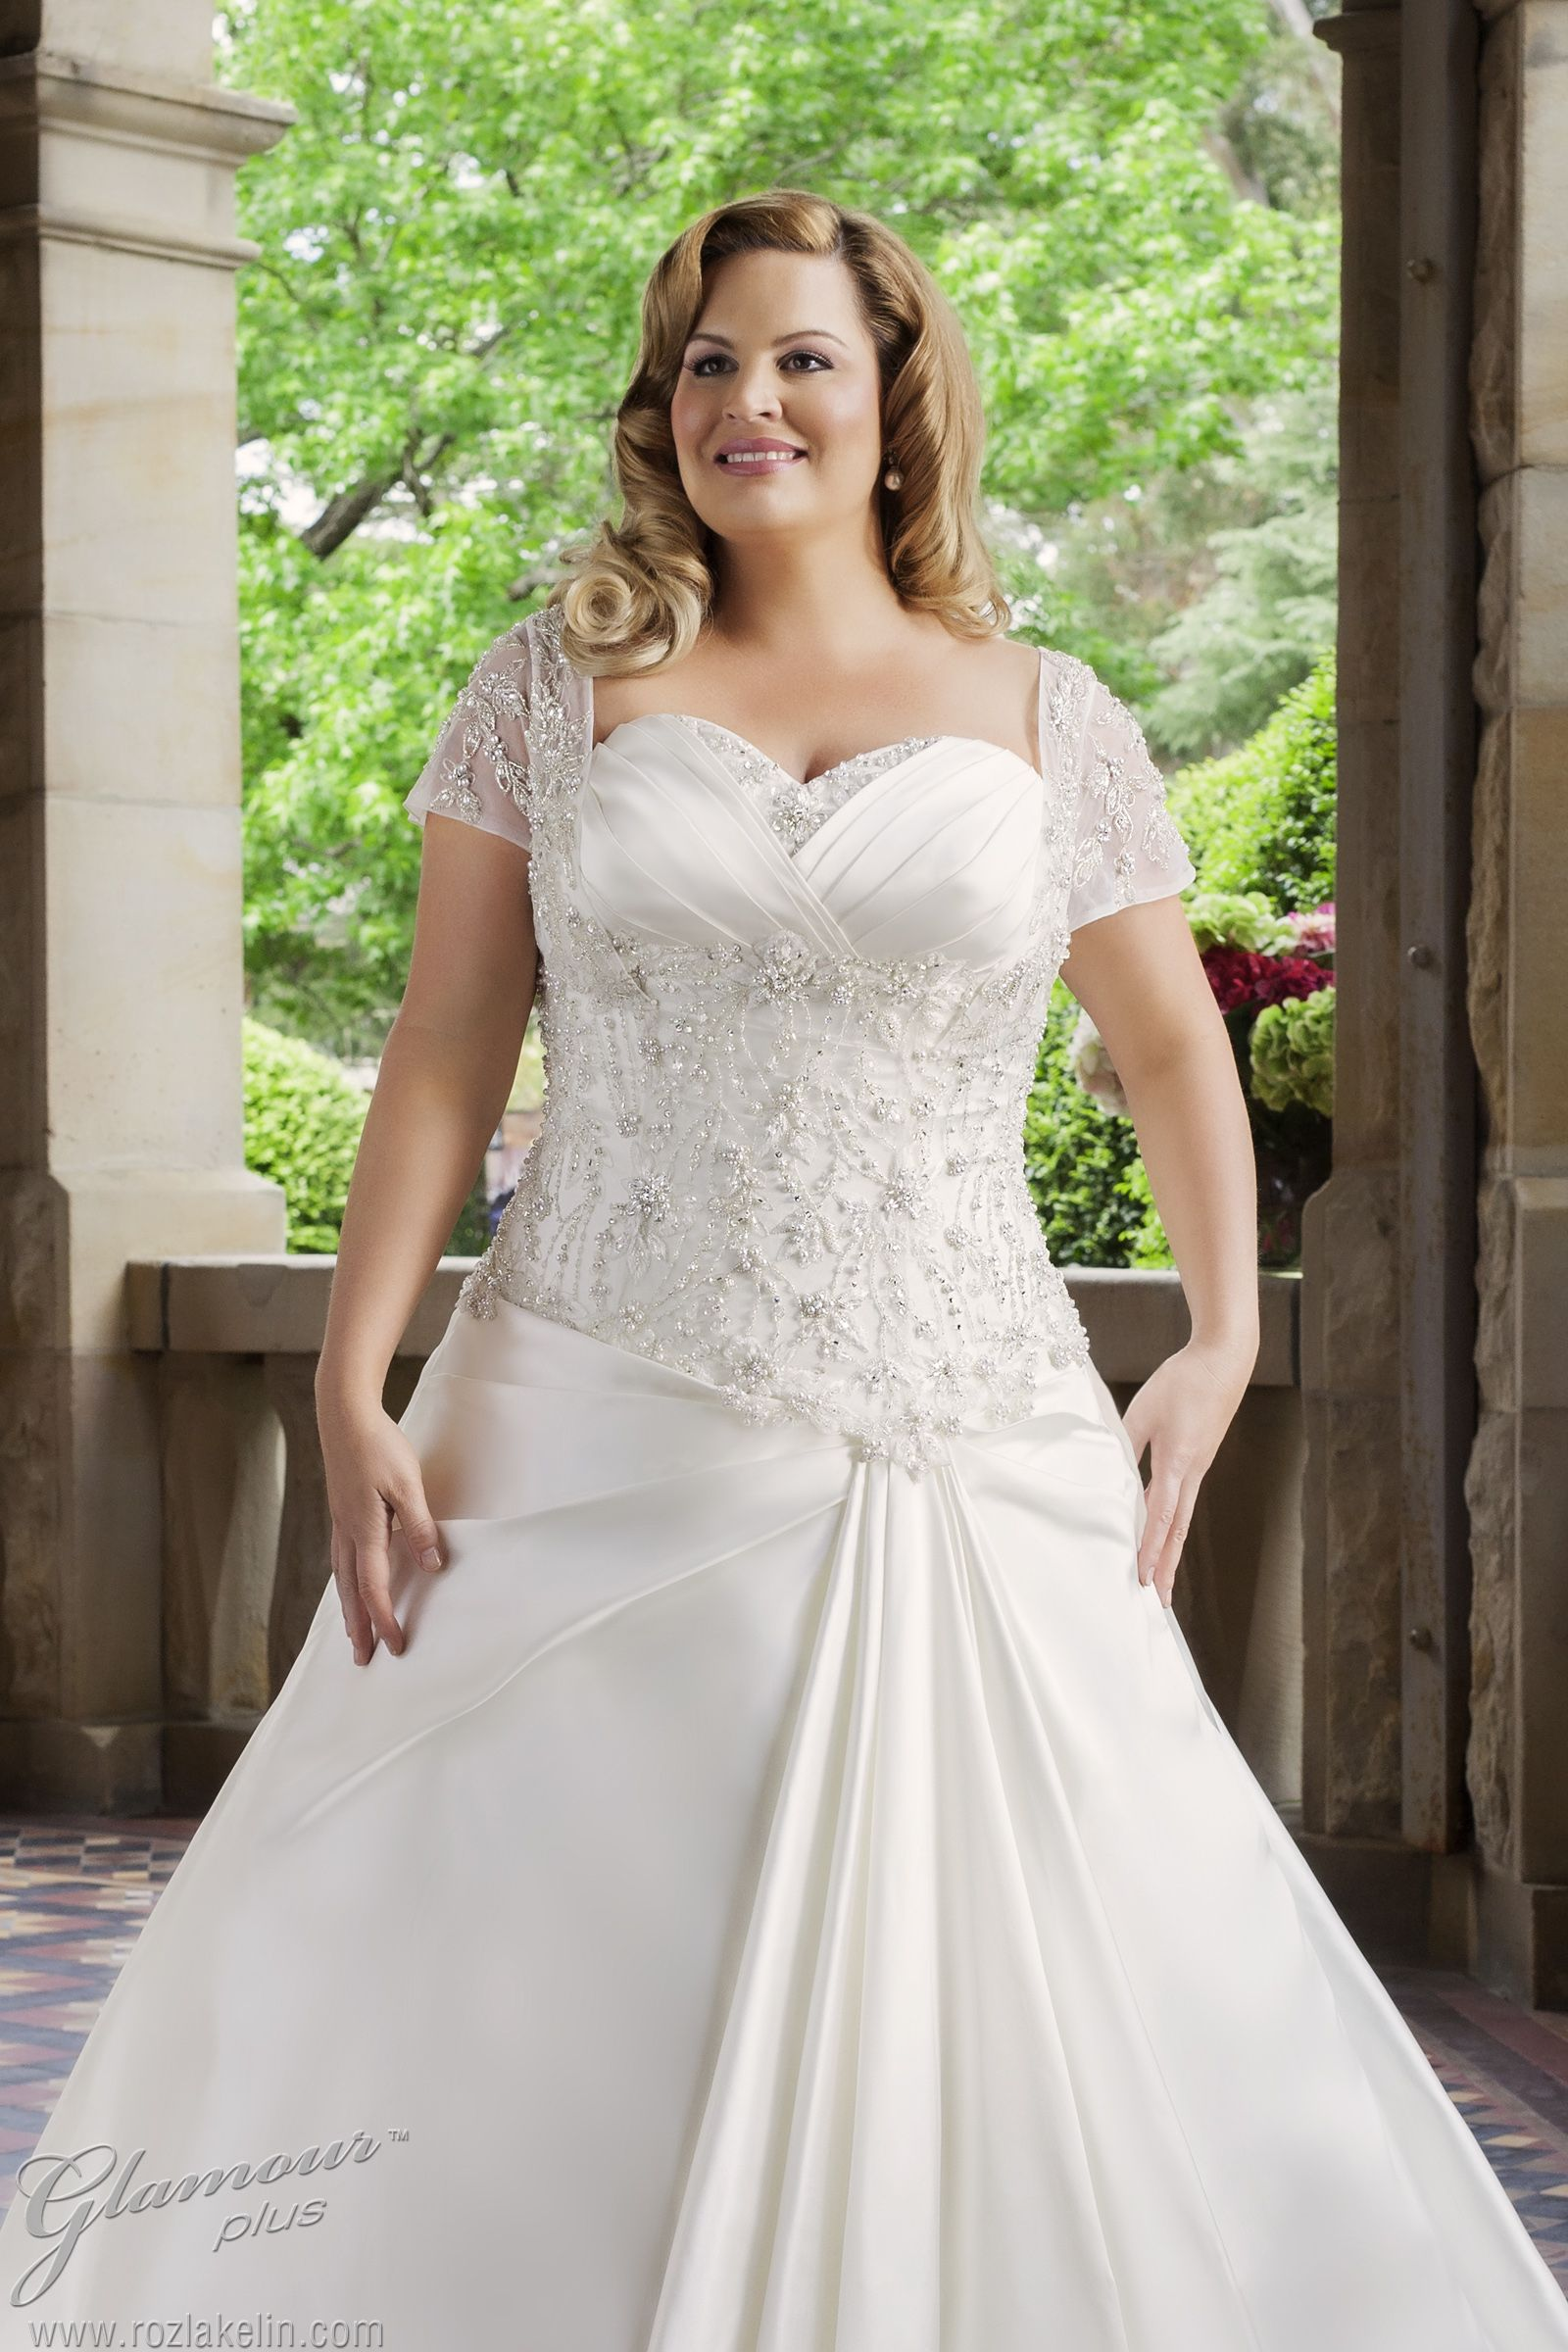 Glamour-plus-size-wedding-dress-roz-la-kelin-bridal-Jasmine-5637T-fc ...